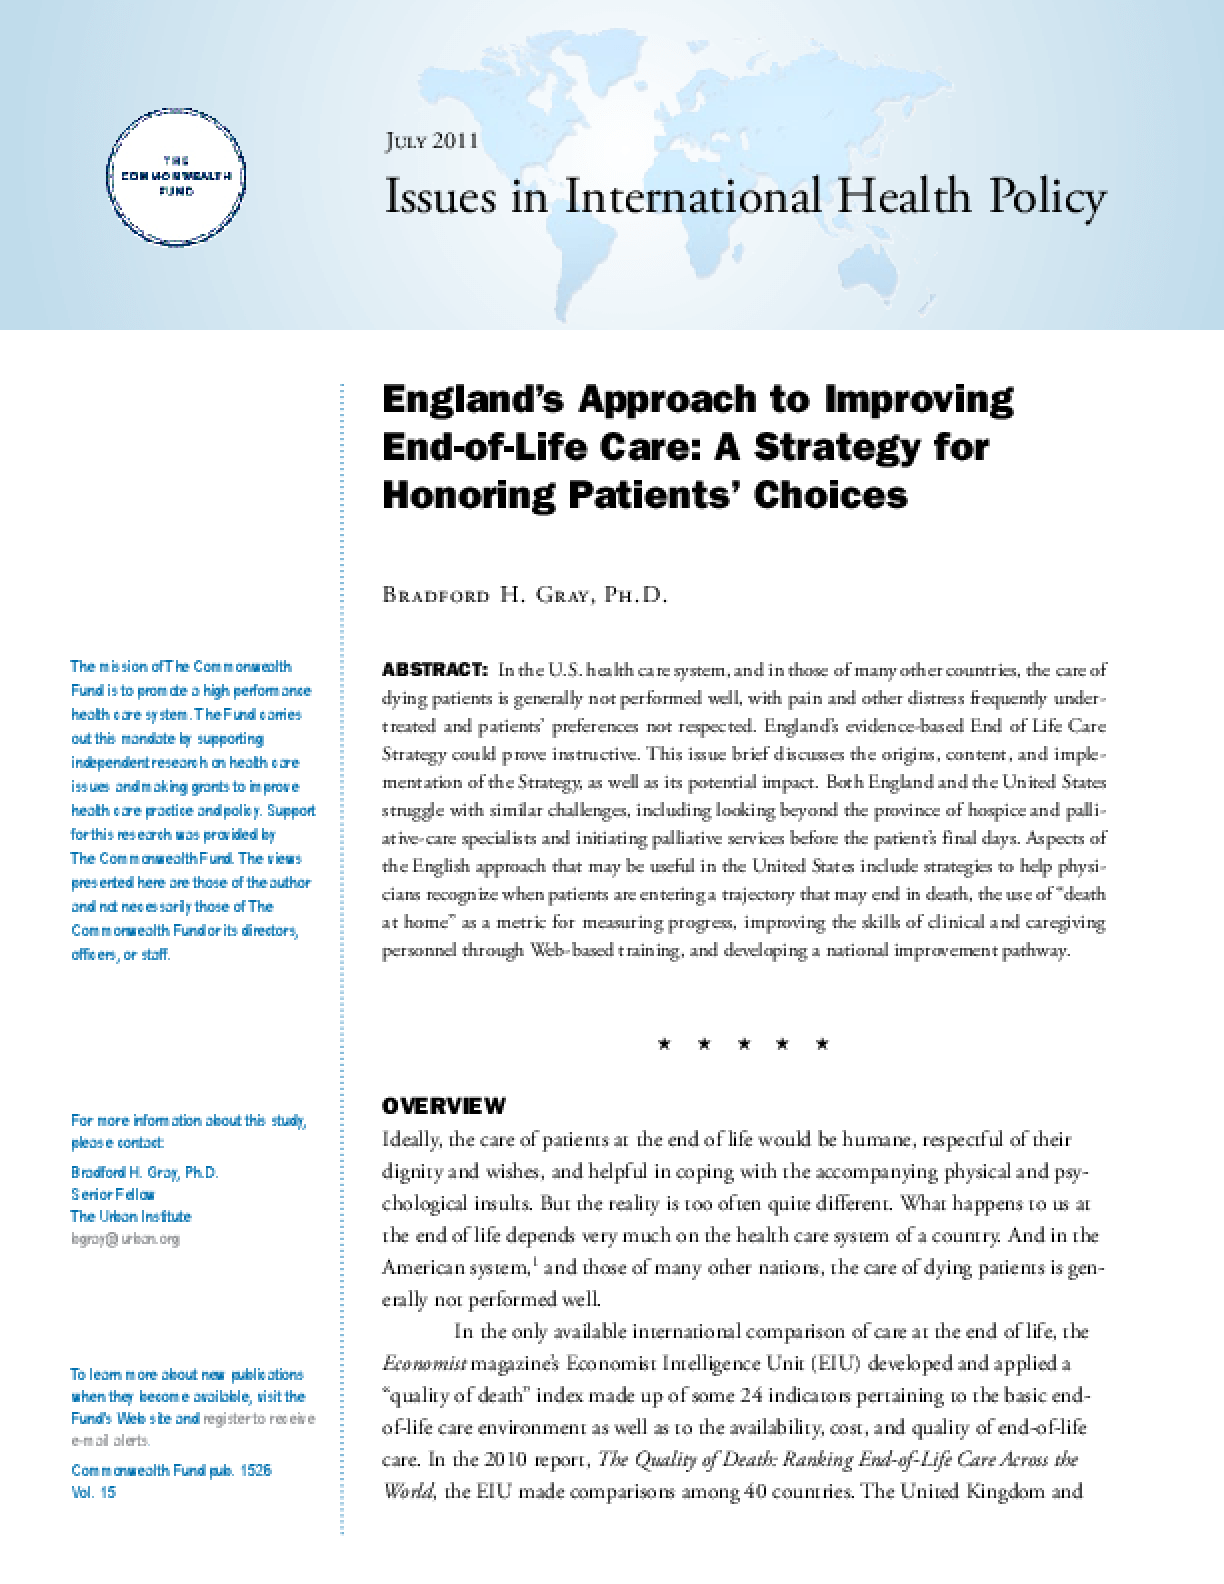 England's Approach to Improving End-of-Life Care: A Strategy for Honoring Patients' Choices